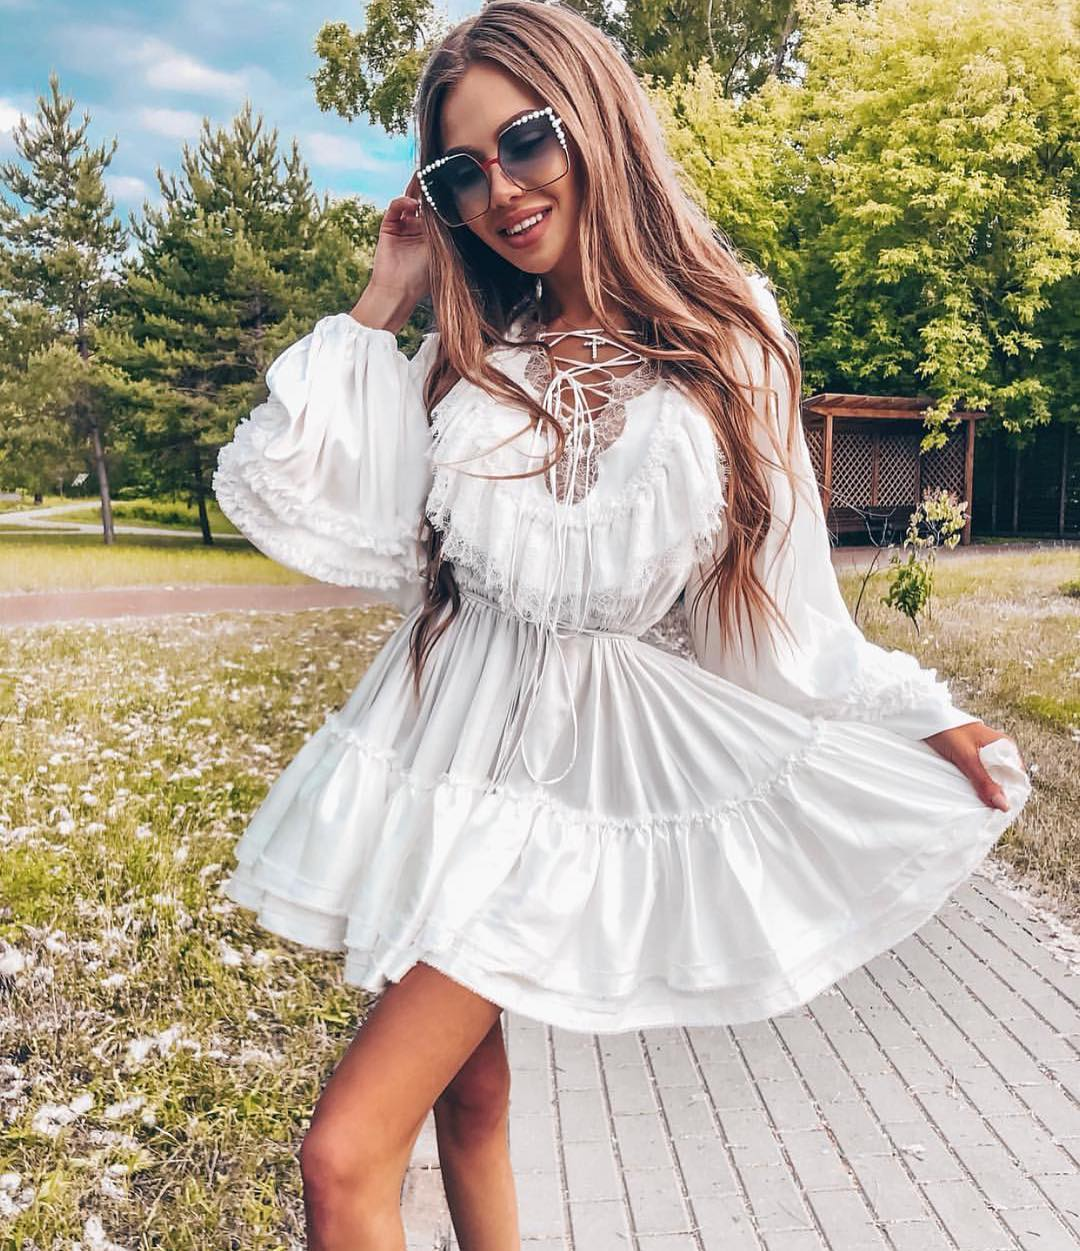 White Dress With Ruffles And Lace Up Neck For Summer 2020